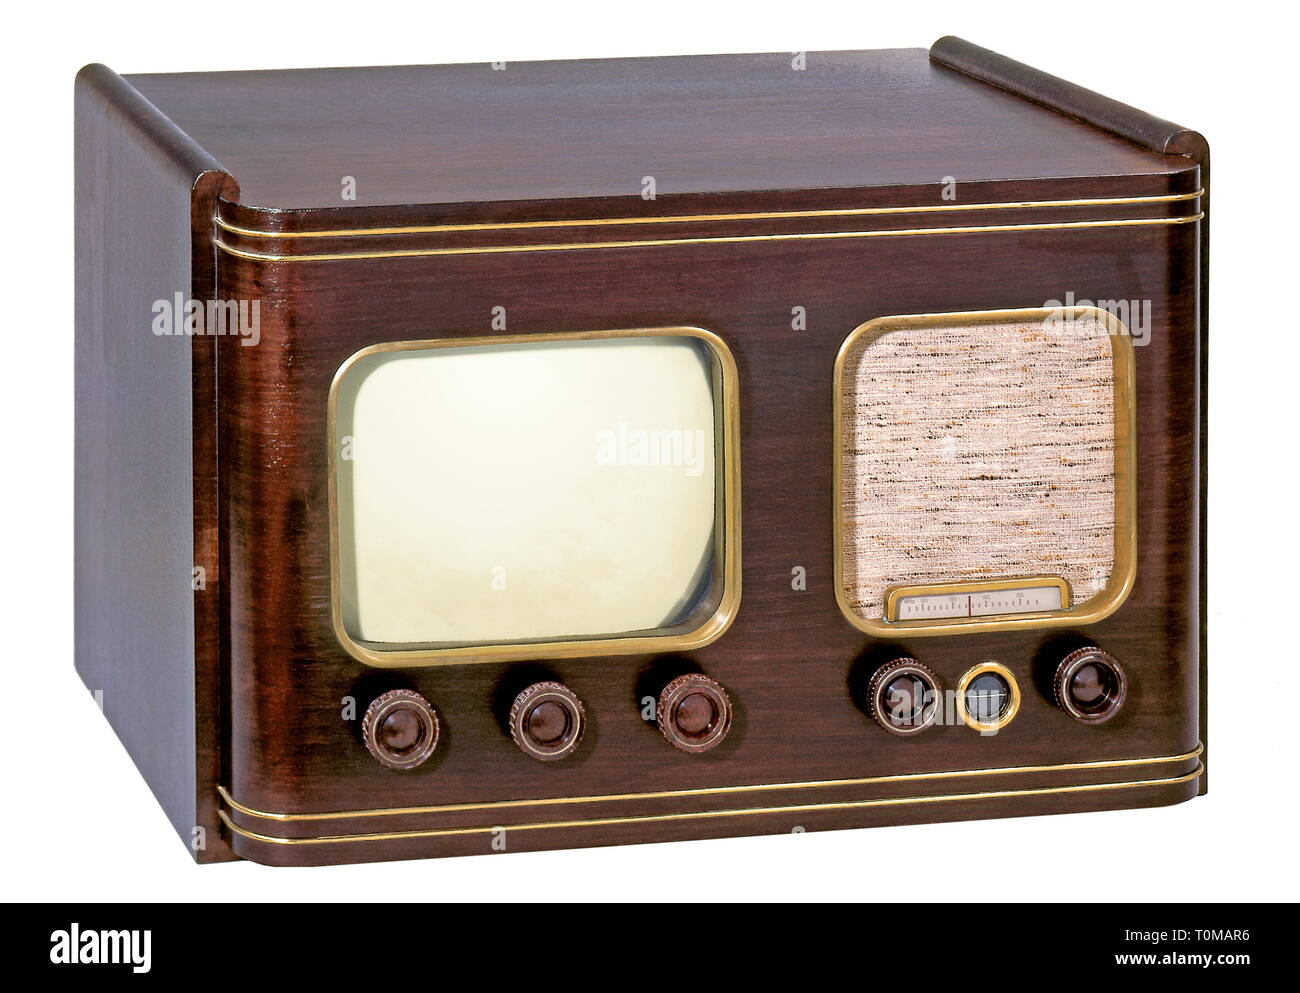 broadcast, television, television set of the C. Lorenz Company, TV set 6 P 515, pre-version, produced circa 1951, one of the first TV sets after the Second World War, Germany, 1951, Additional-Rights-Clearance-Info-Not-Available - Stock Image